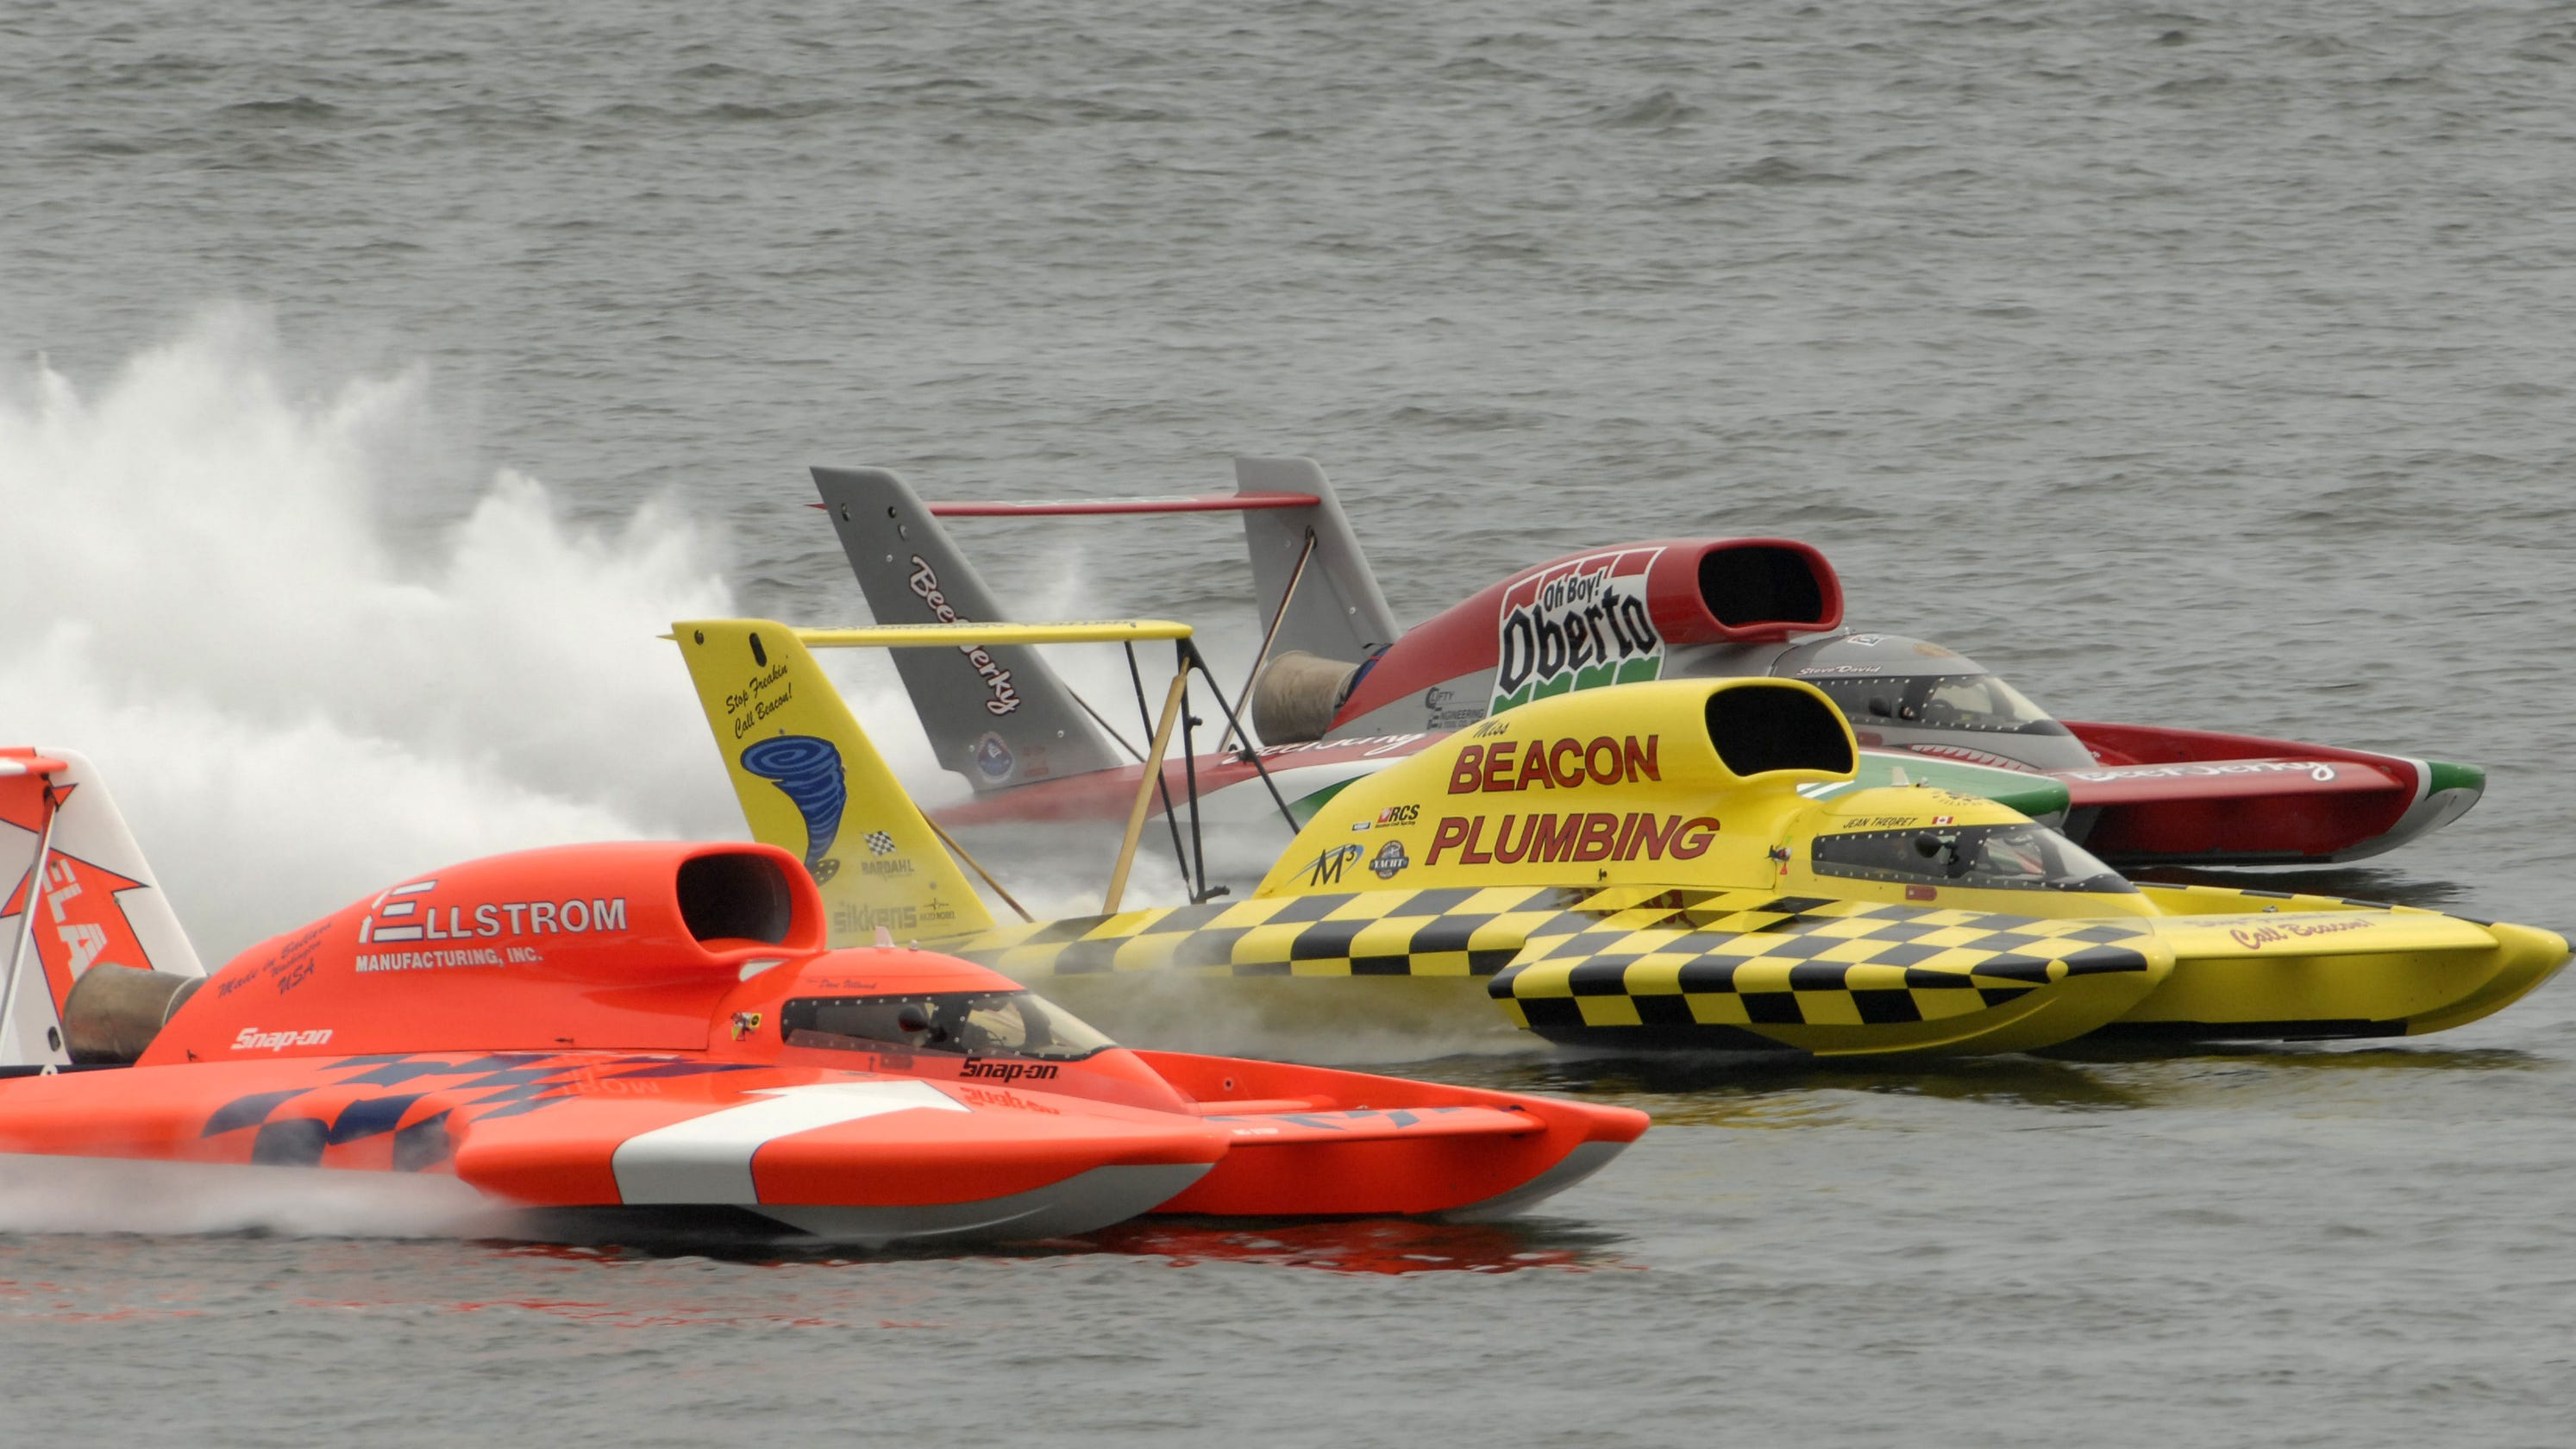 Hydroplane boat racing off the table for now, but a return is possible